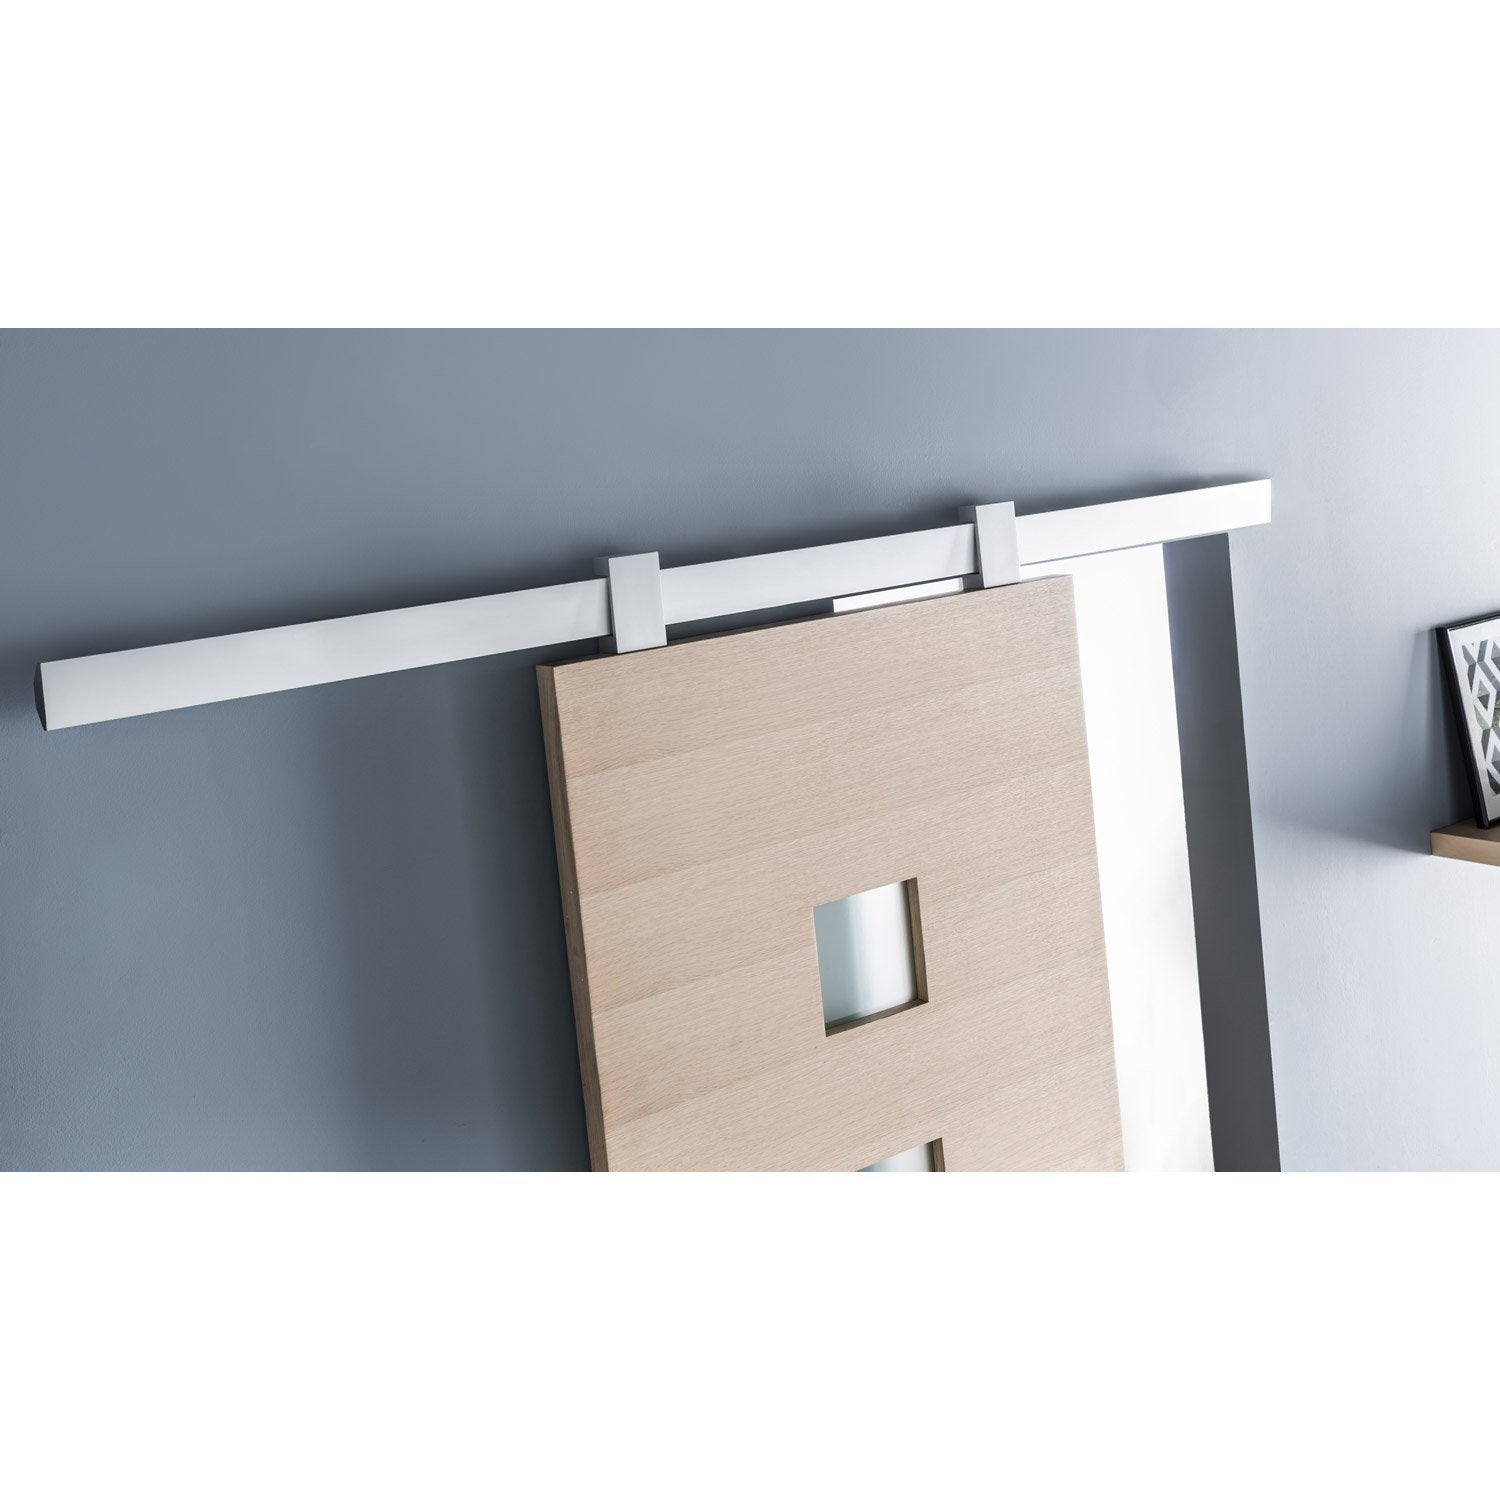 Rail coulissant gota pour porte de largeur 93 cm maximum leroy merlin - Leroy merlin rail coulissant ...